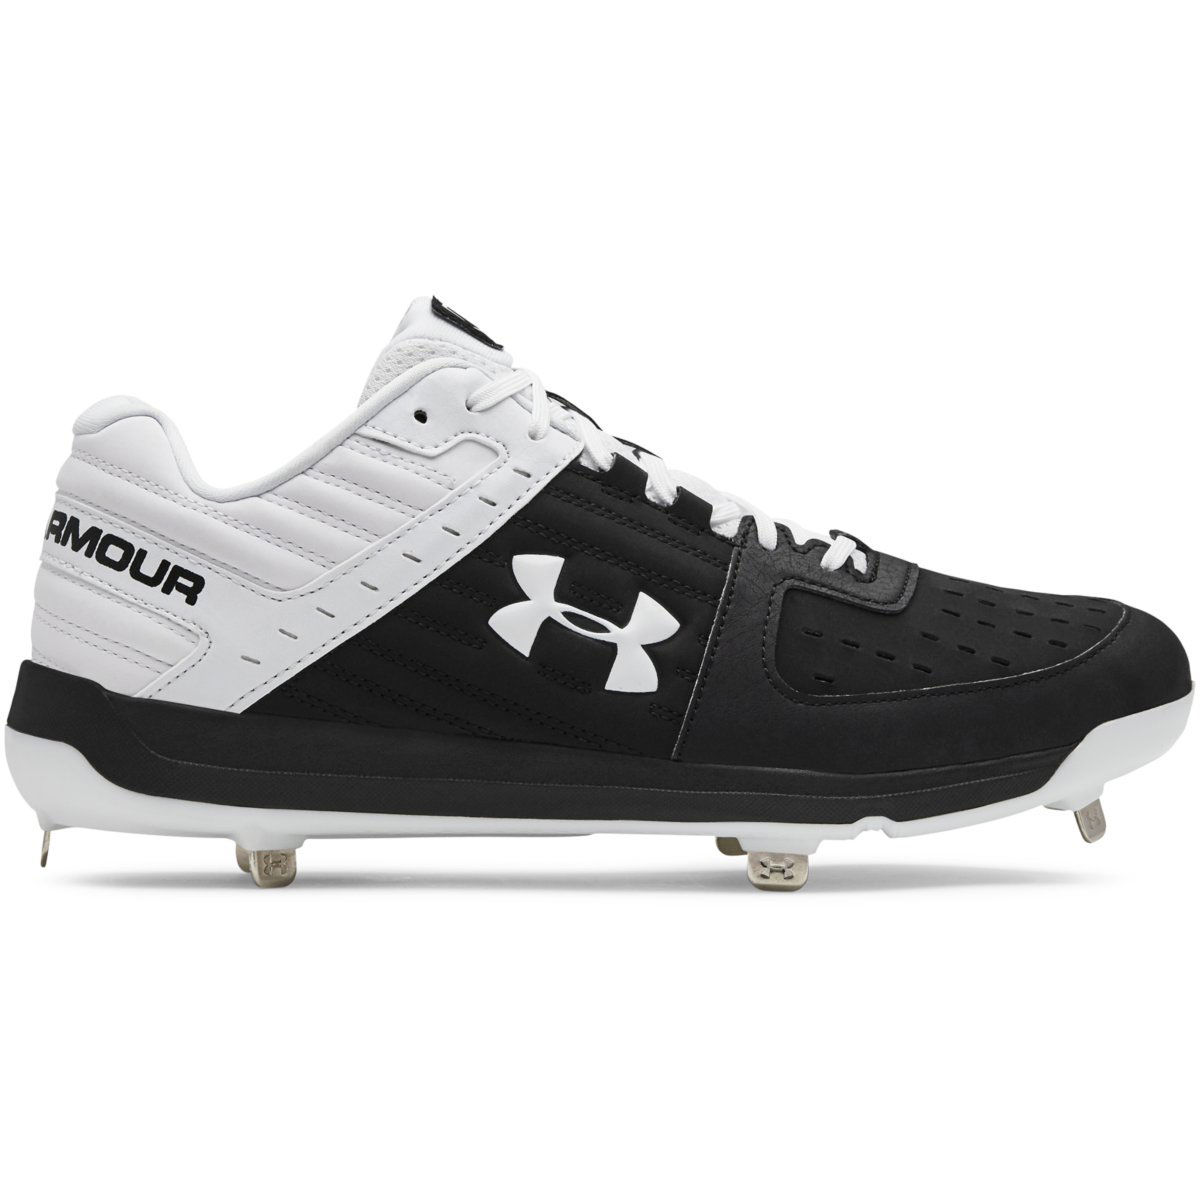 Under Armour Ignite ST Mens Baseball Cleat